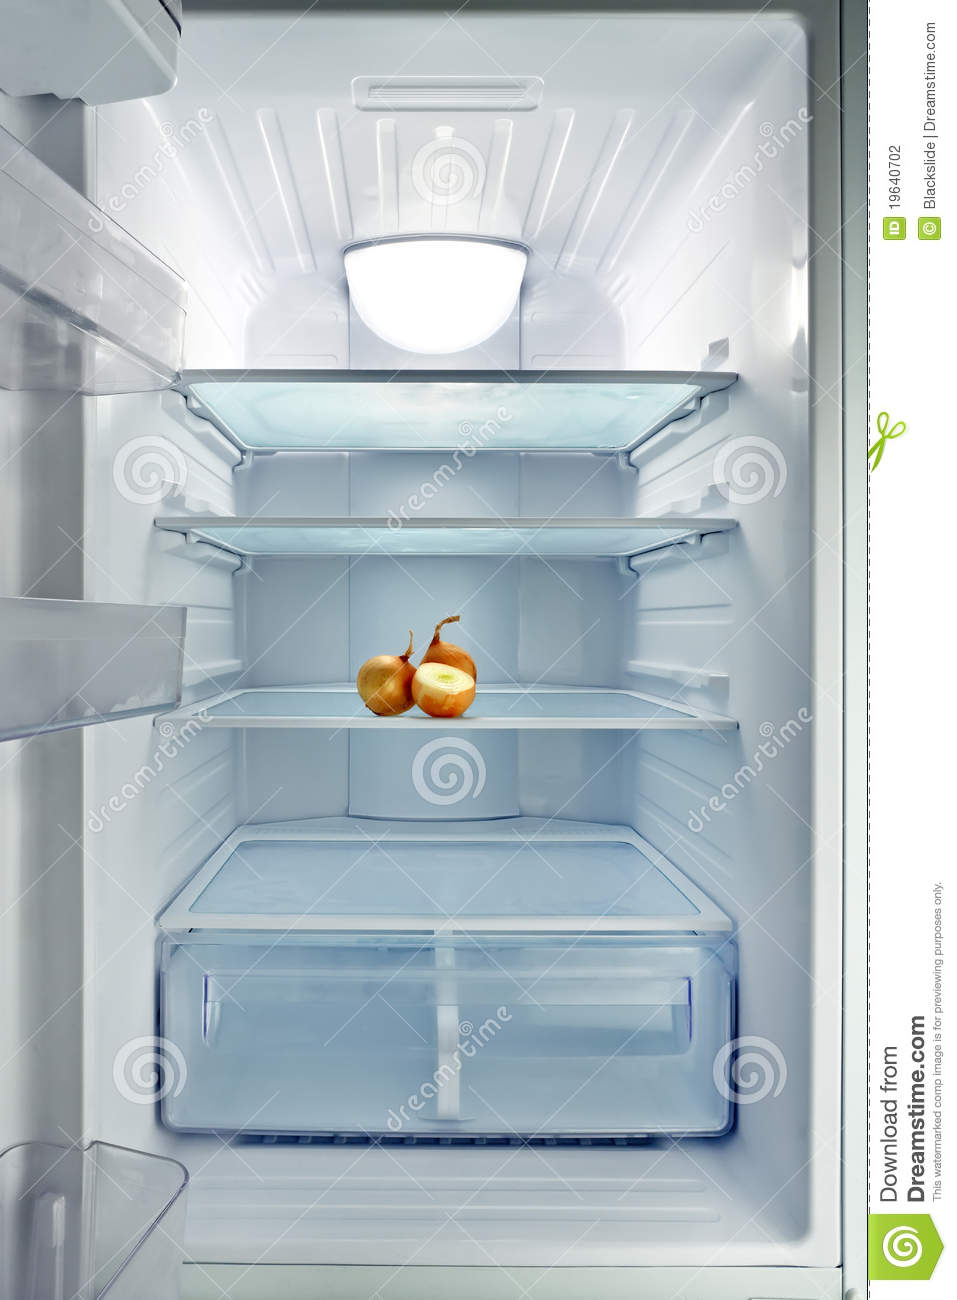 Empty Fridge Stock Photos Download 4 928 Royalty Free Photos